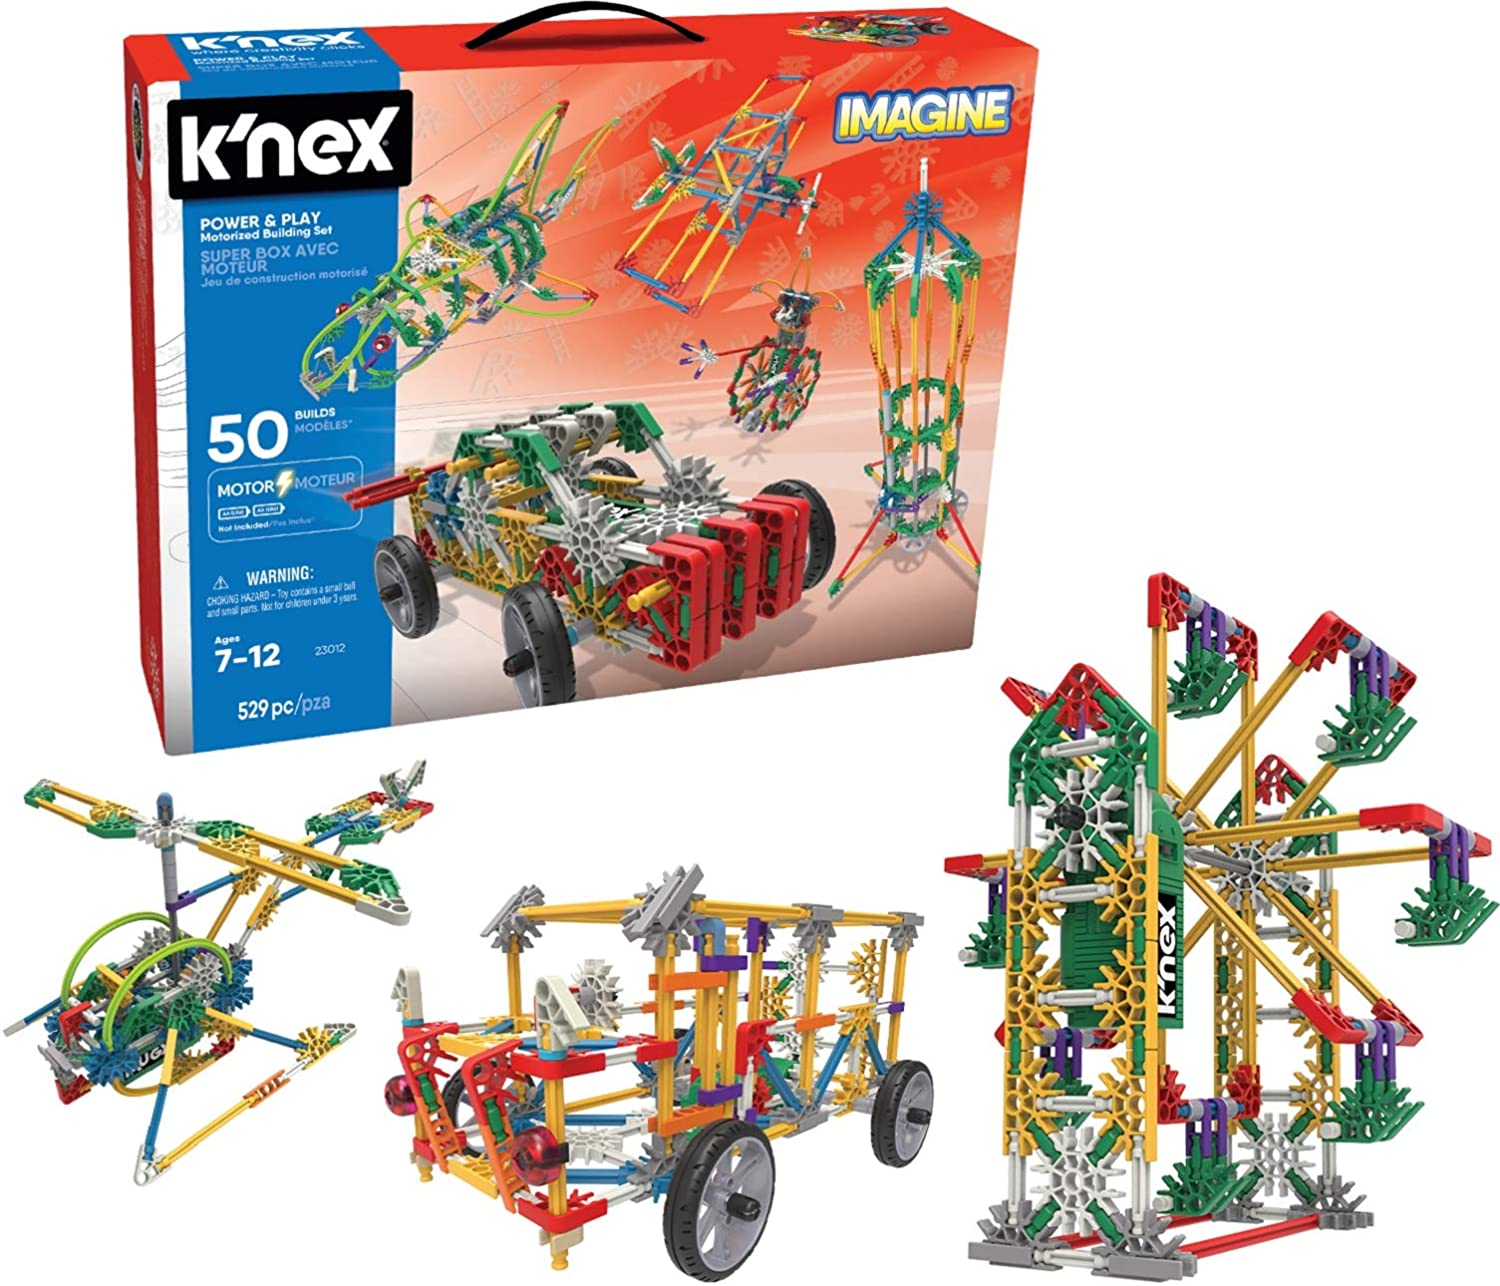 gifts-for-6-year-old-boys-knex